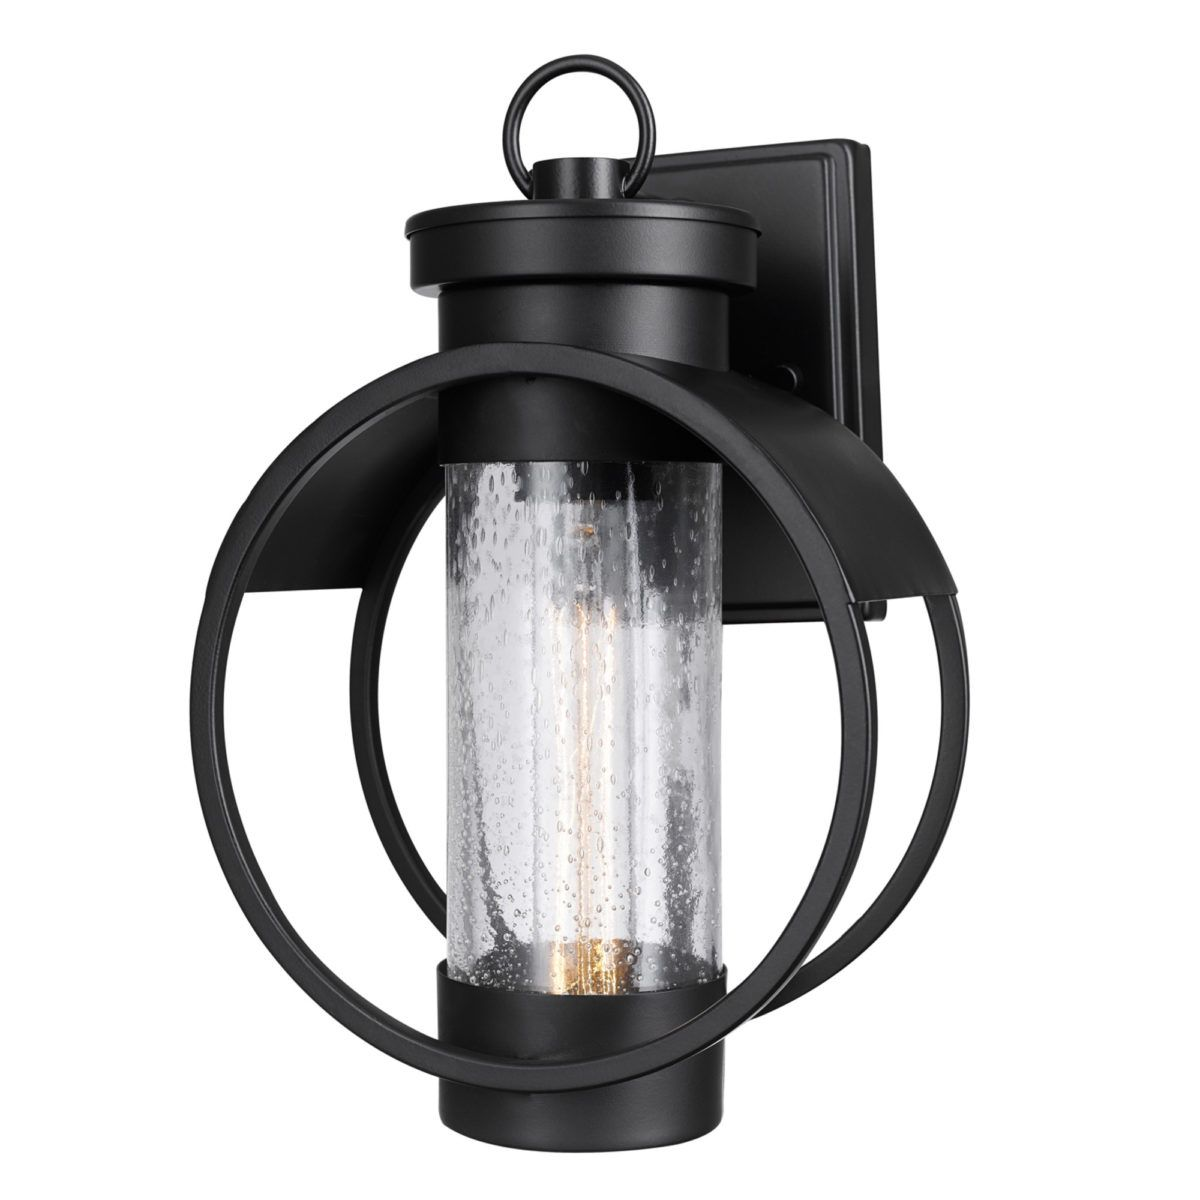 Outdoor wall sconce matte black finish with seeded glass shade